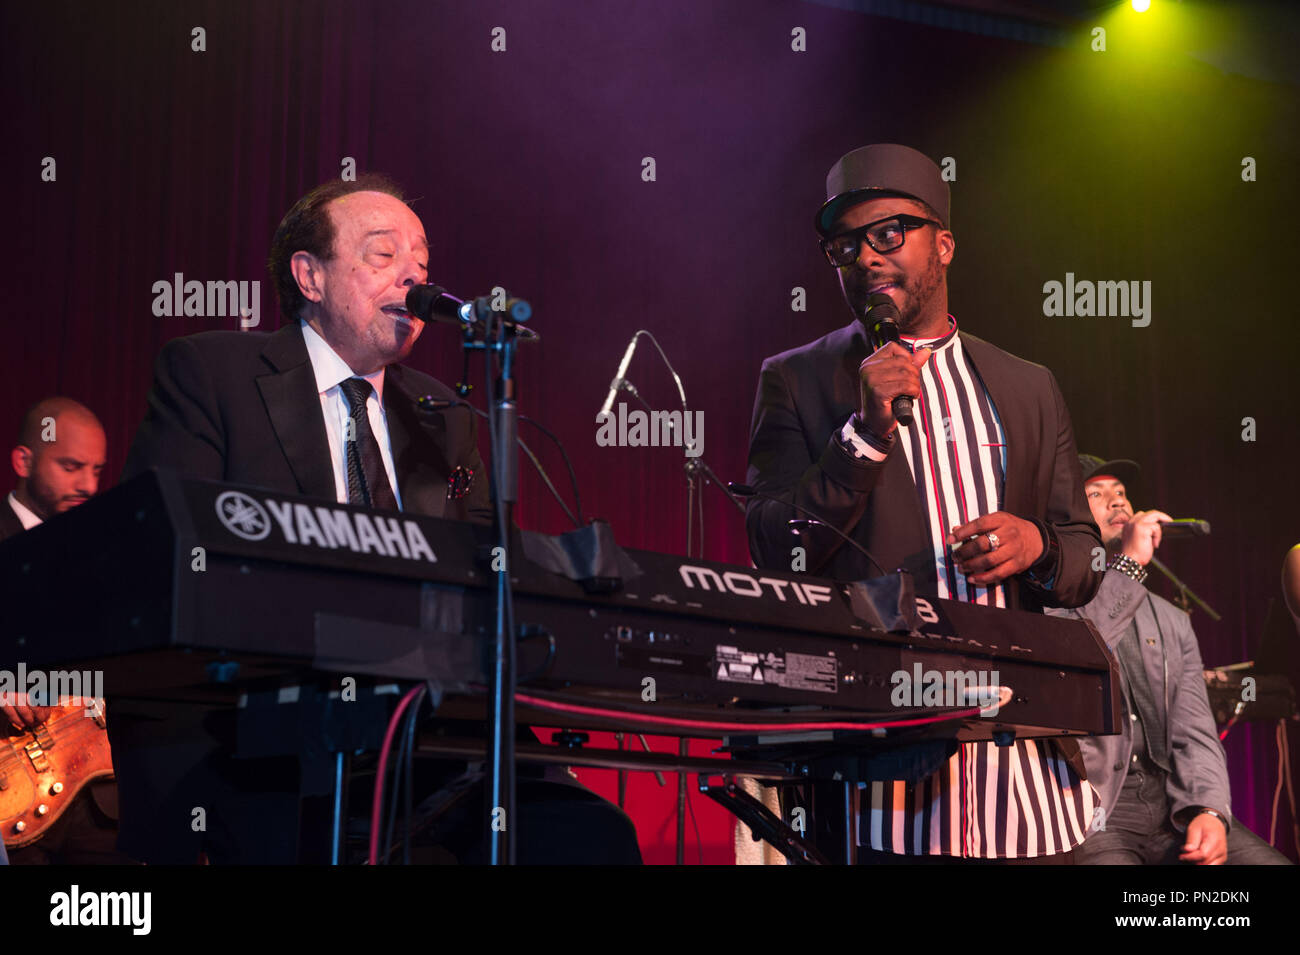 Sergio Mendes and will.i.am perform at the Governor's Ball after the live ABC Telecast of The 87th Oscars® at the Dolby® Theatre in Hollywood, CA on Sunday, February 22, 2015.  File Reference # 32571_024THA  For Editorial Use Only -  All Rights Reserved - Stock Image